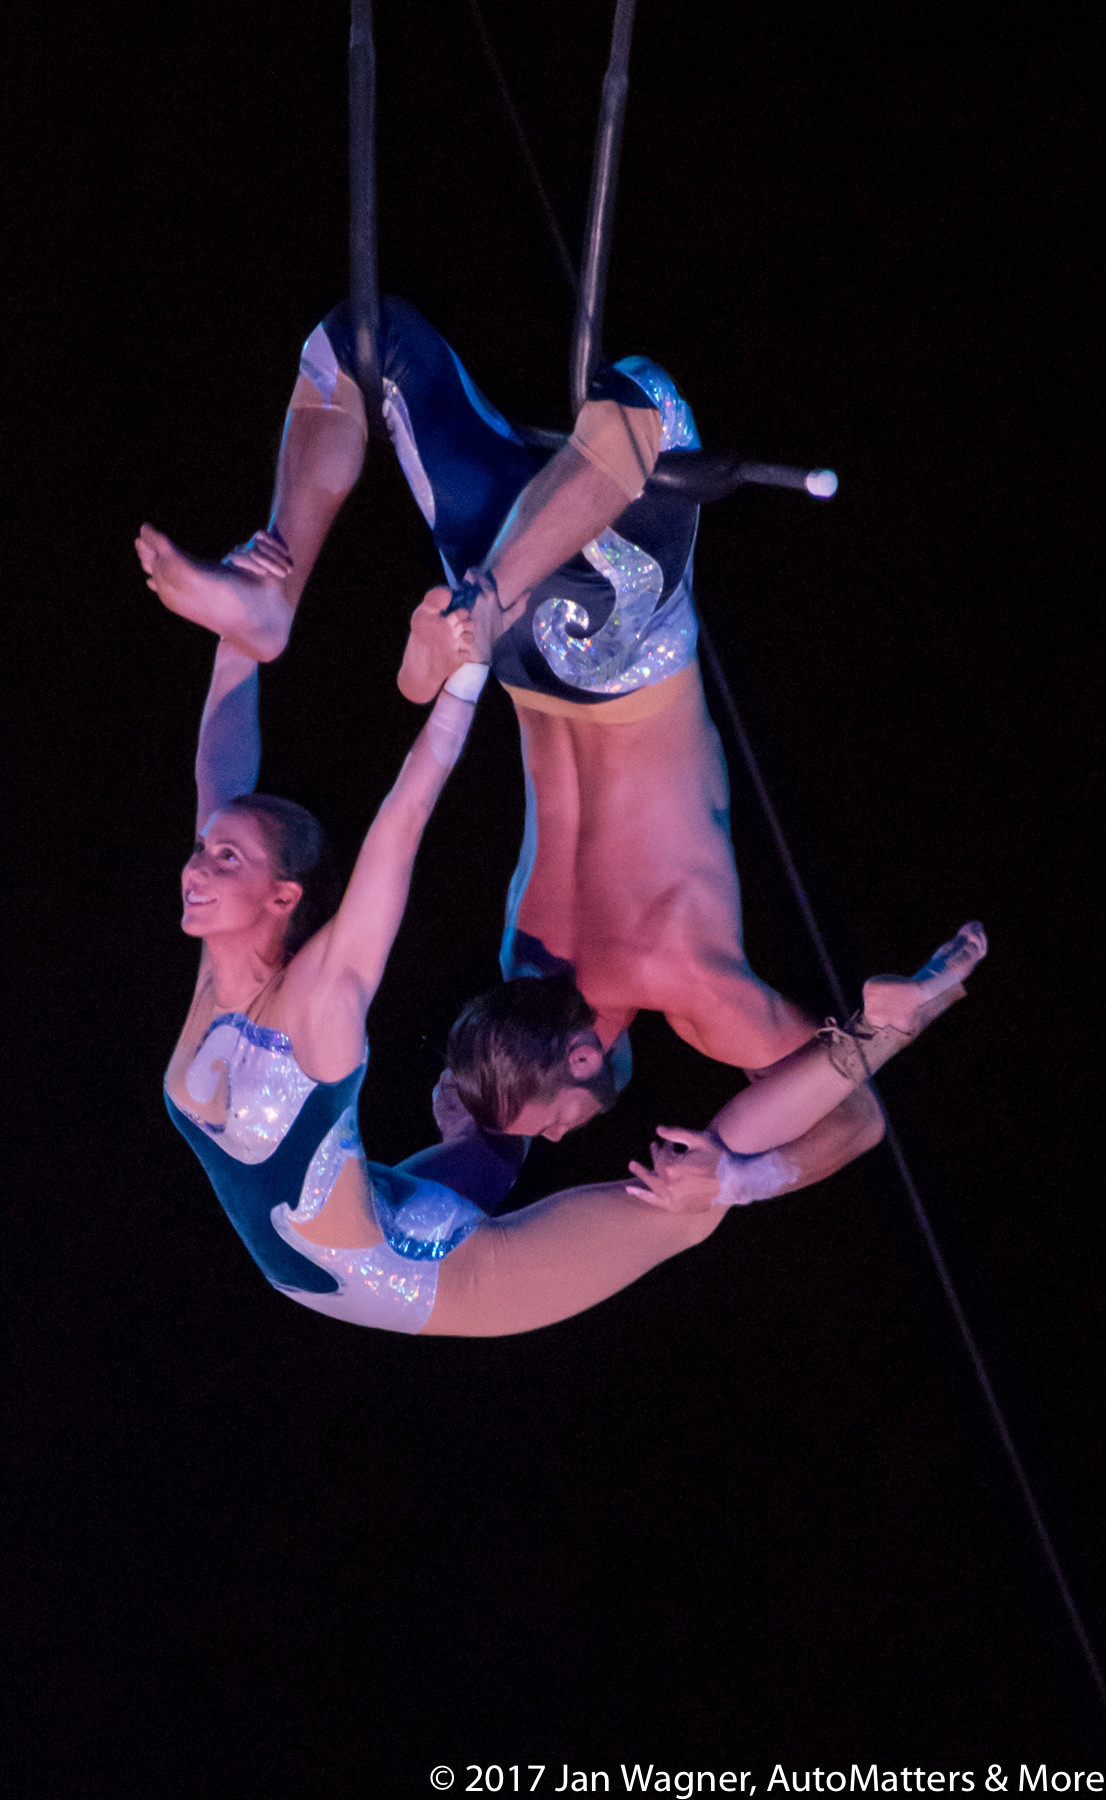 Daring aerialists in the Cirque Electrique Electric Ocean show